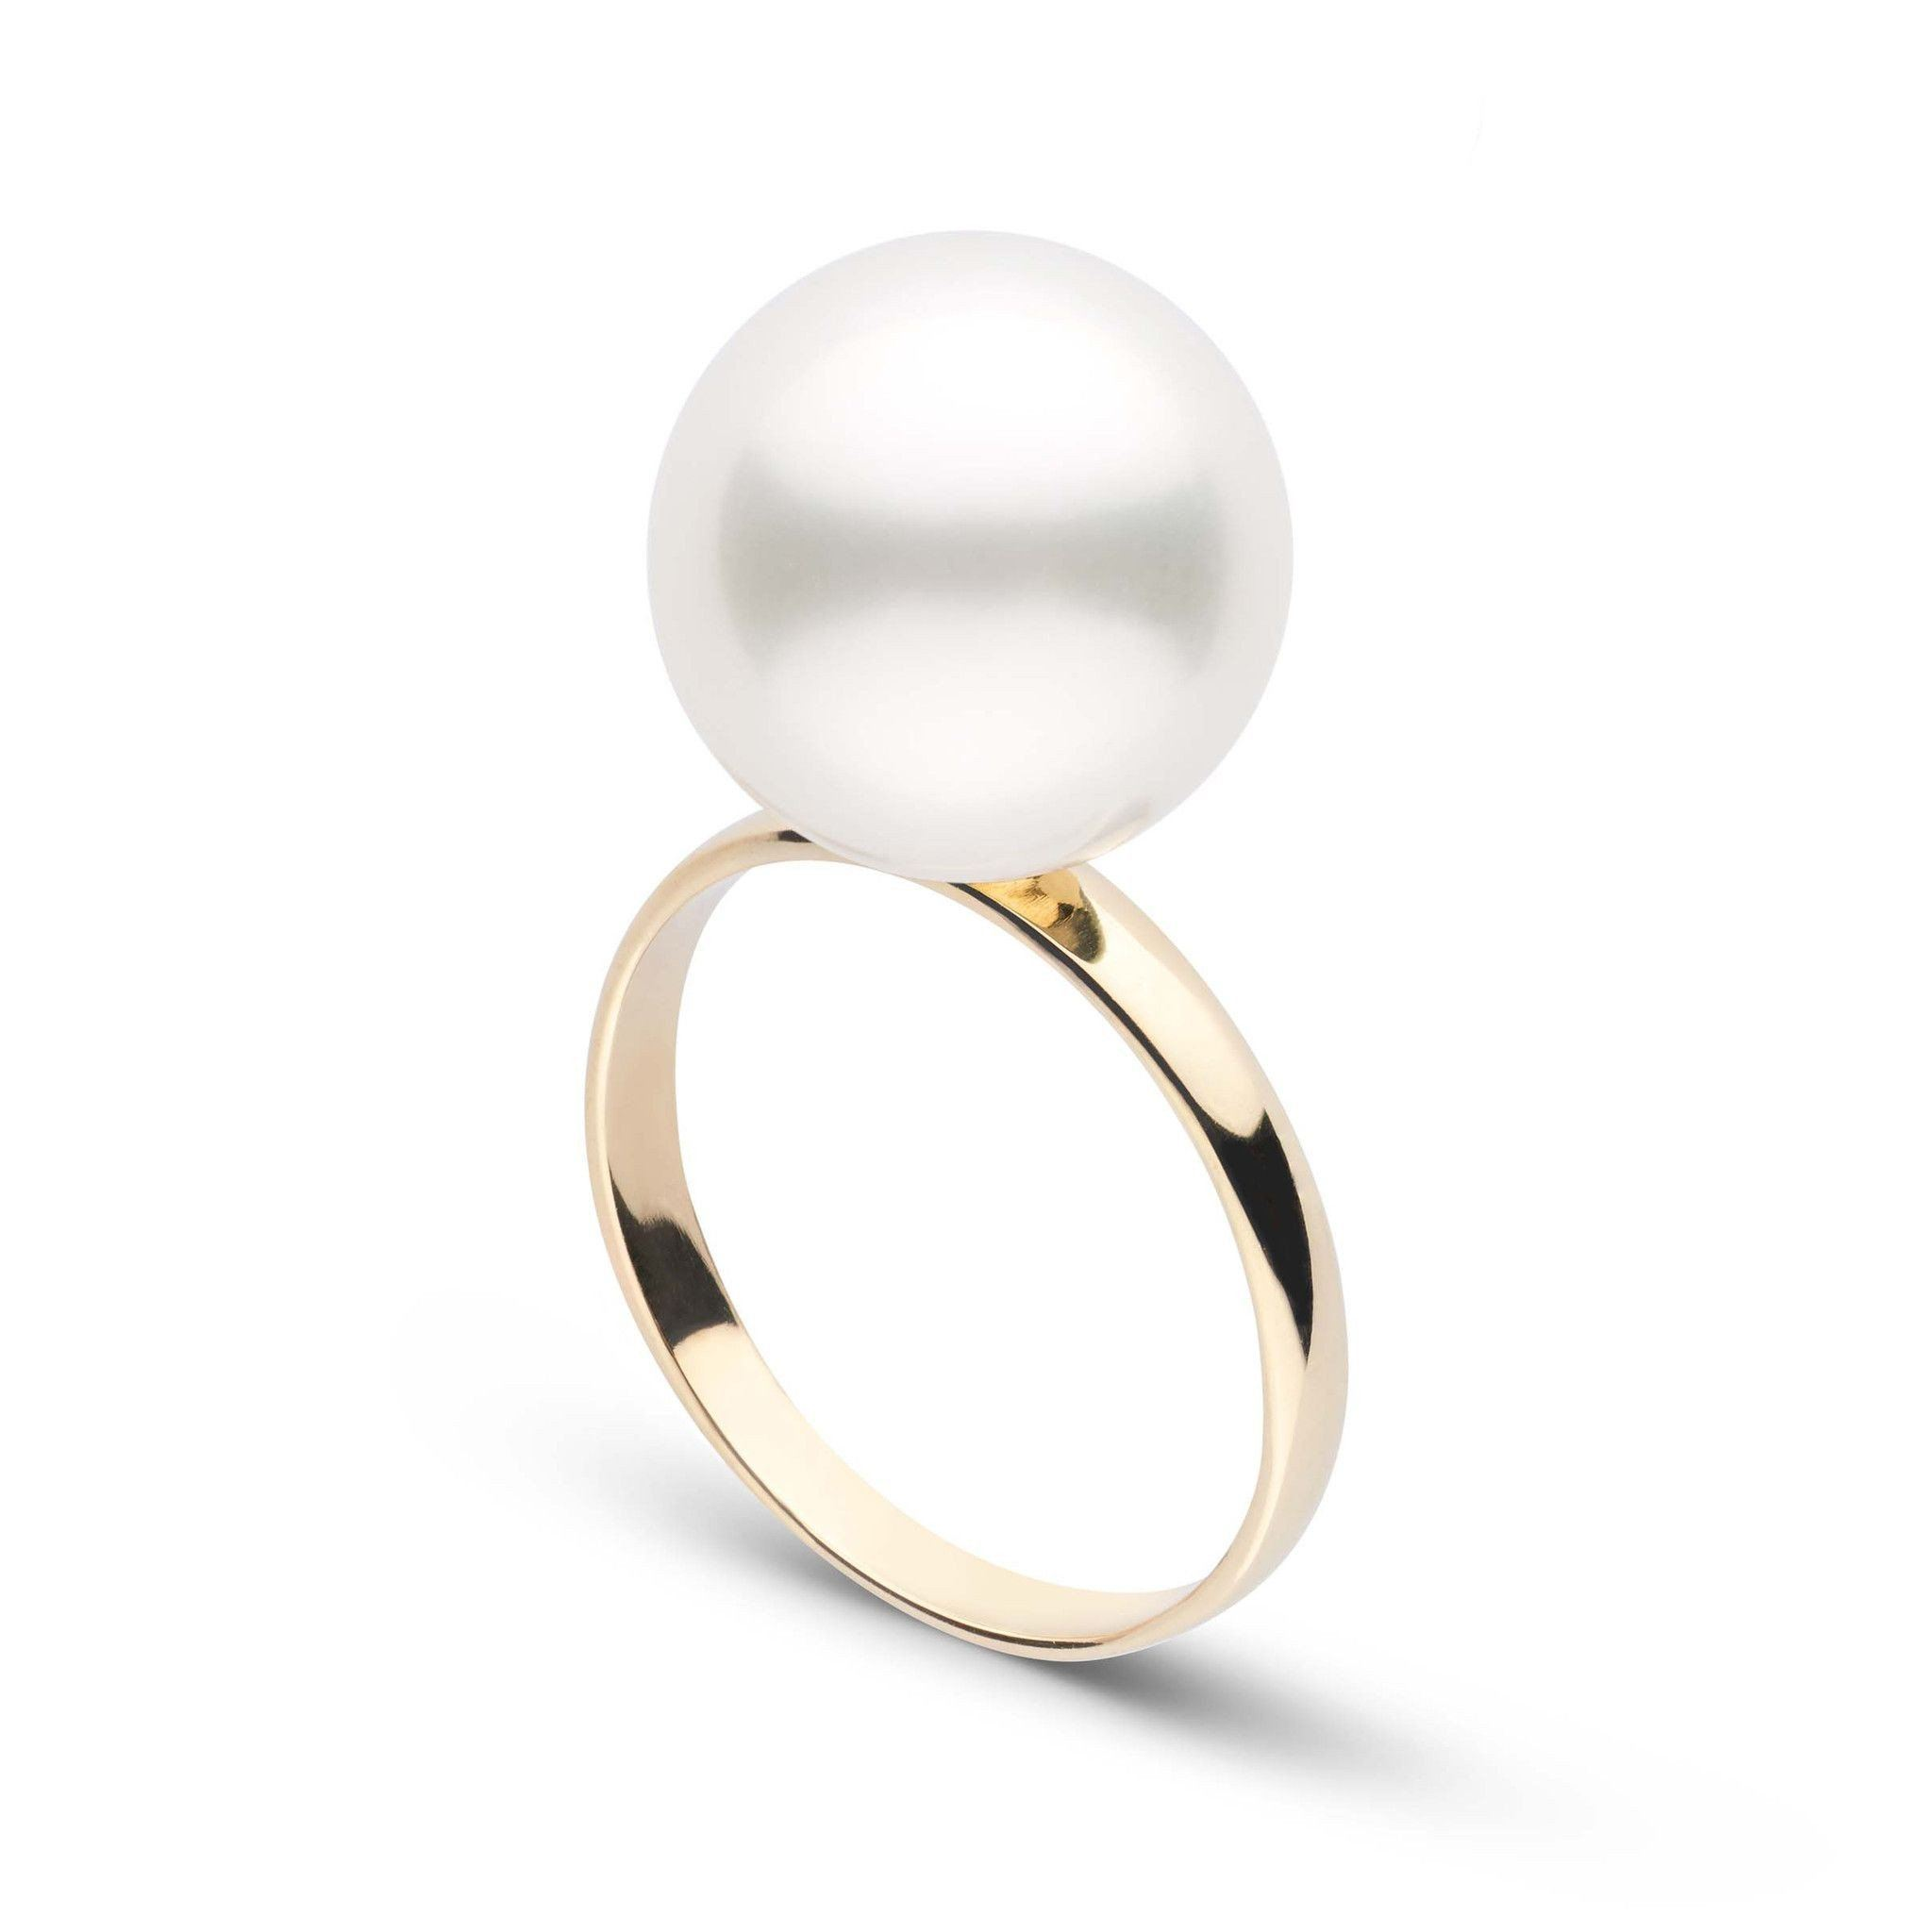 online sea christie jewels christies south eco earrings pearl cultured s pearls diamond and